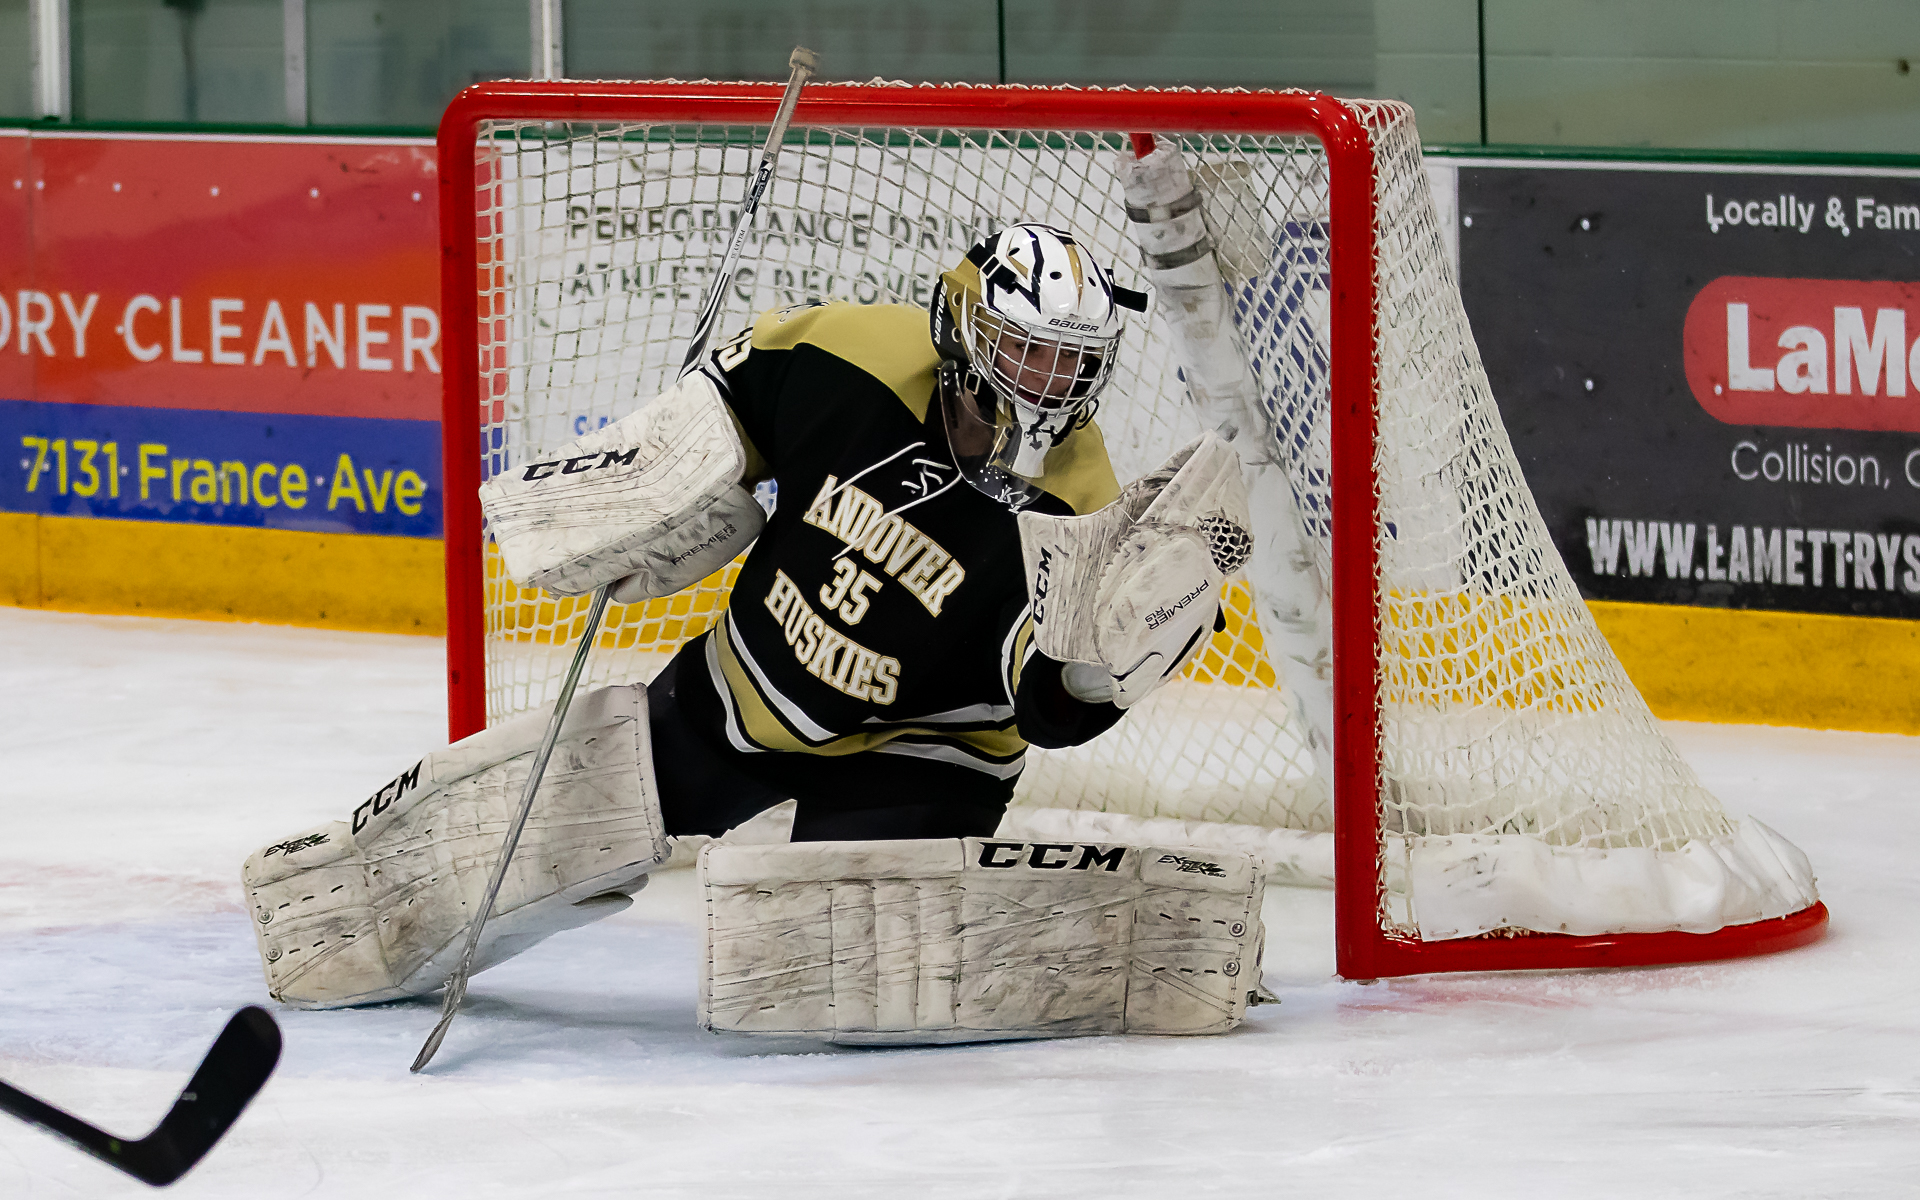 Andover senior Amanda Pelkey stopped all 25 Edina shots as the Huskies shut out the Hornets 1-0 on Thursday night at Braemar Arena. Photo by Gary Mukai, SportsEngine